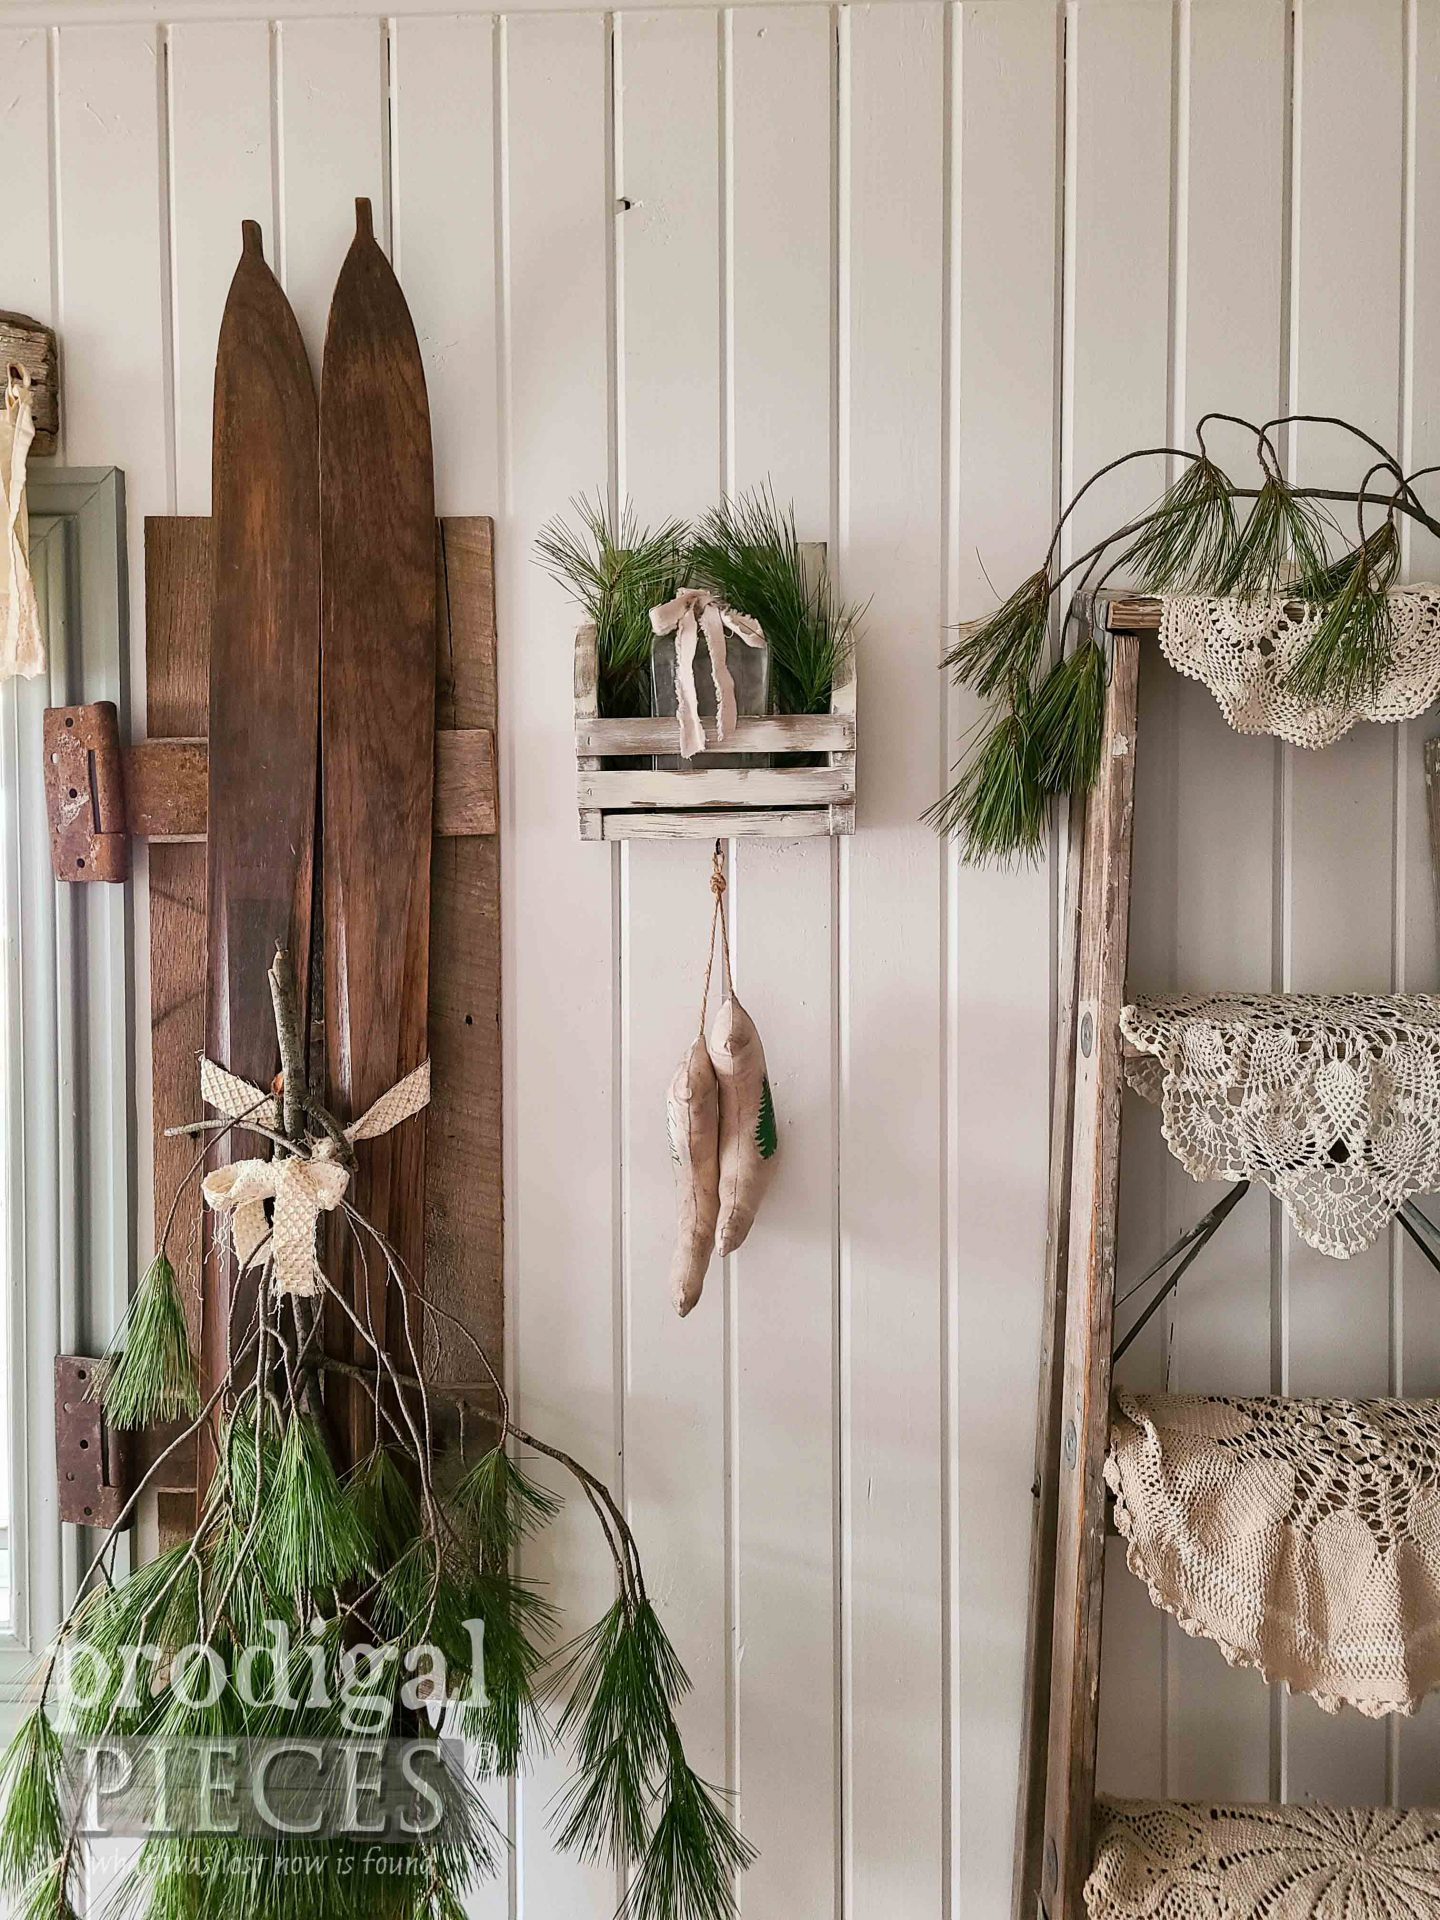 Handmade DIY Farmhouse Wall Pocket with Linen Stockings with Tutorial by Larissa of Prodigal Pieces | prodigalpieces.com #prodigalpieces #farmhouse #christmas #diy